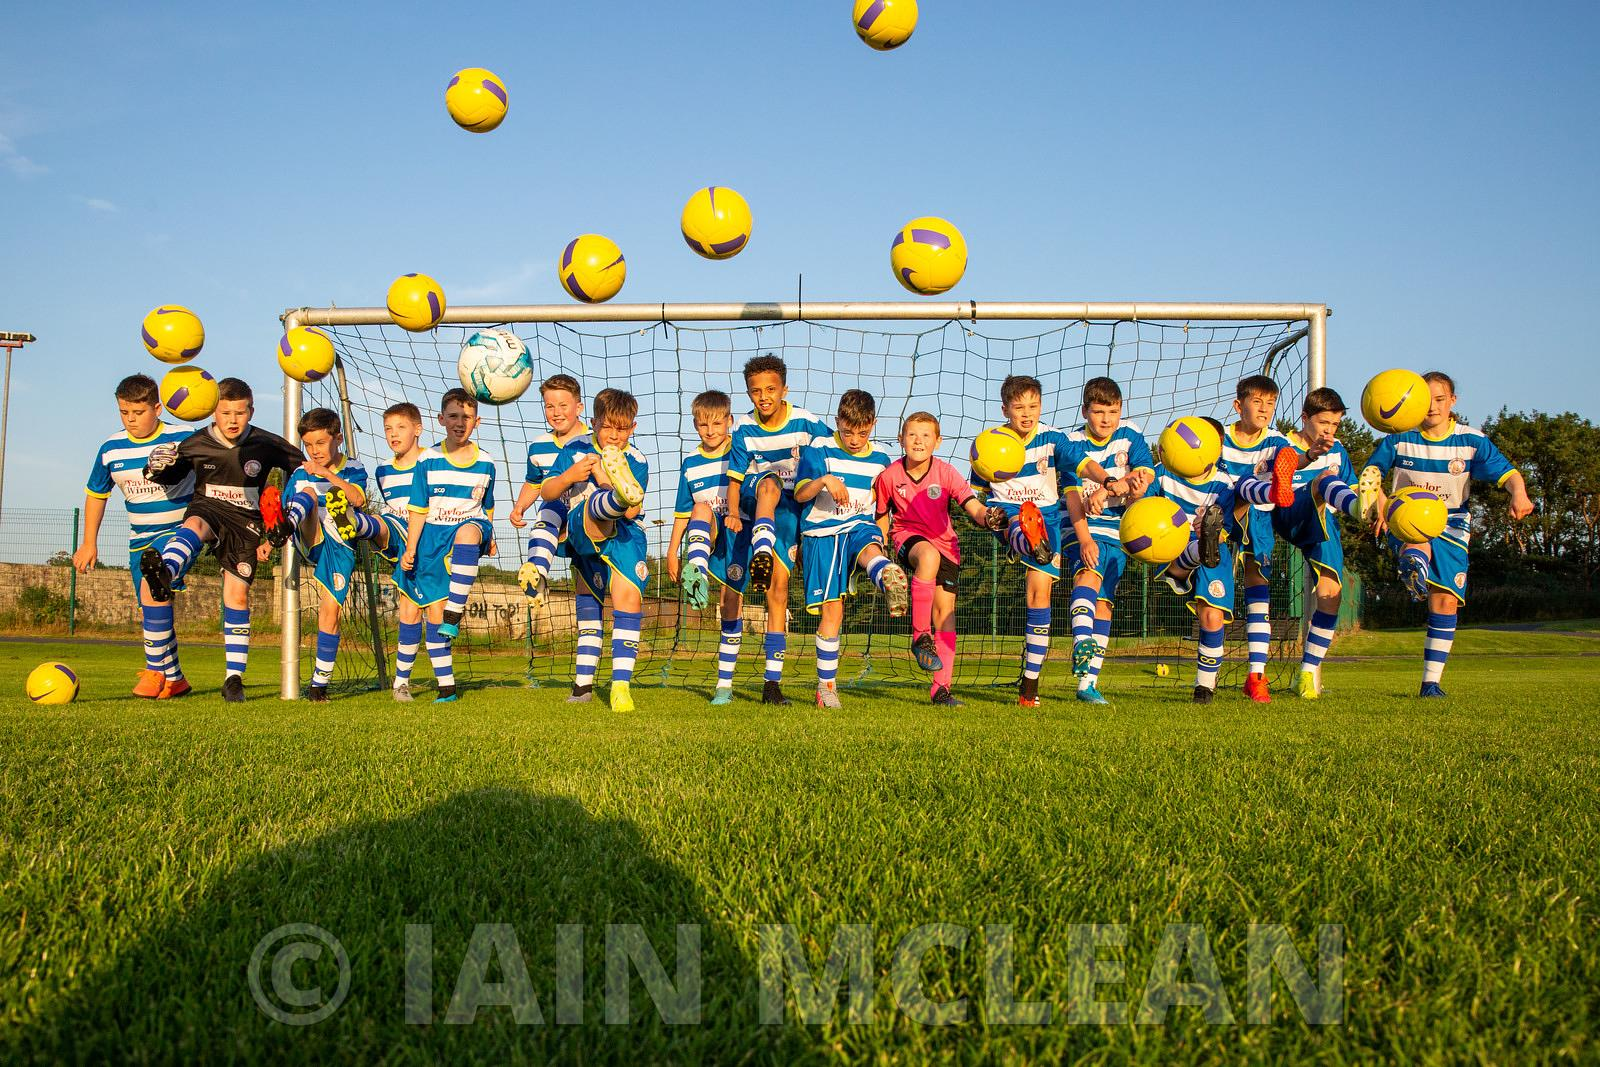 Taylor Wimpey - Kilwinning Sports Club..13.8.20.KSC Madrid with their new Taylor Wimpey sponsored strips...Free PR use for Ta...